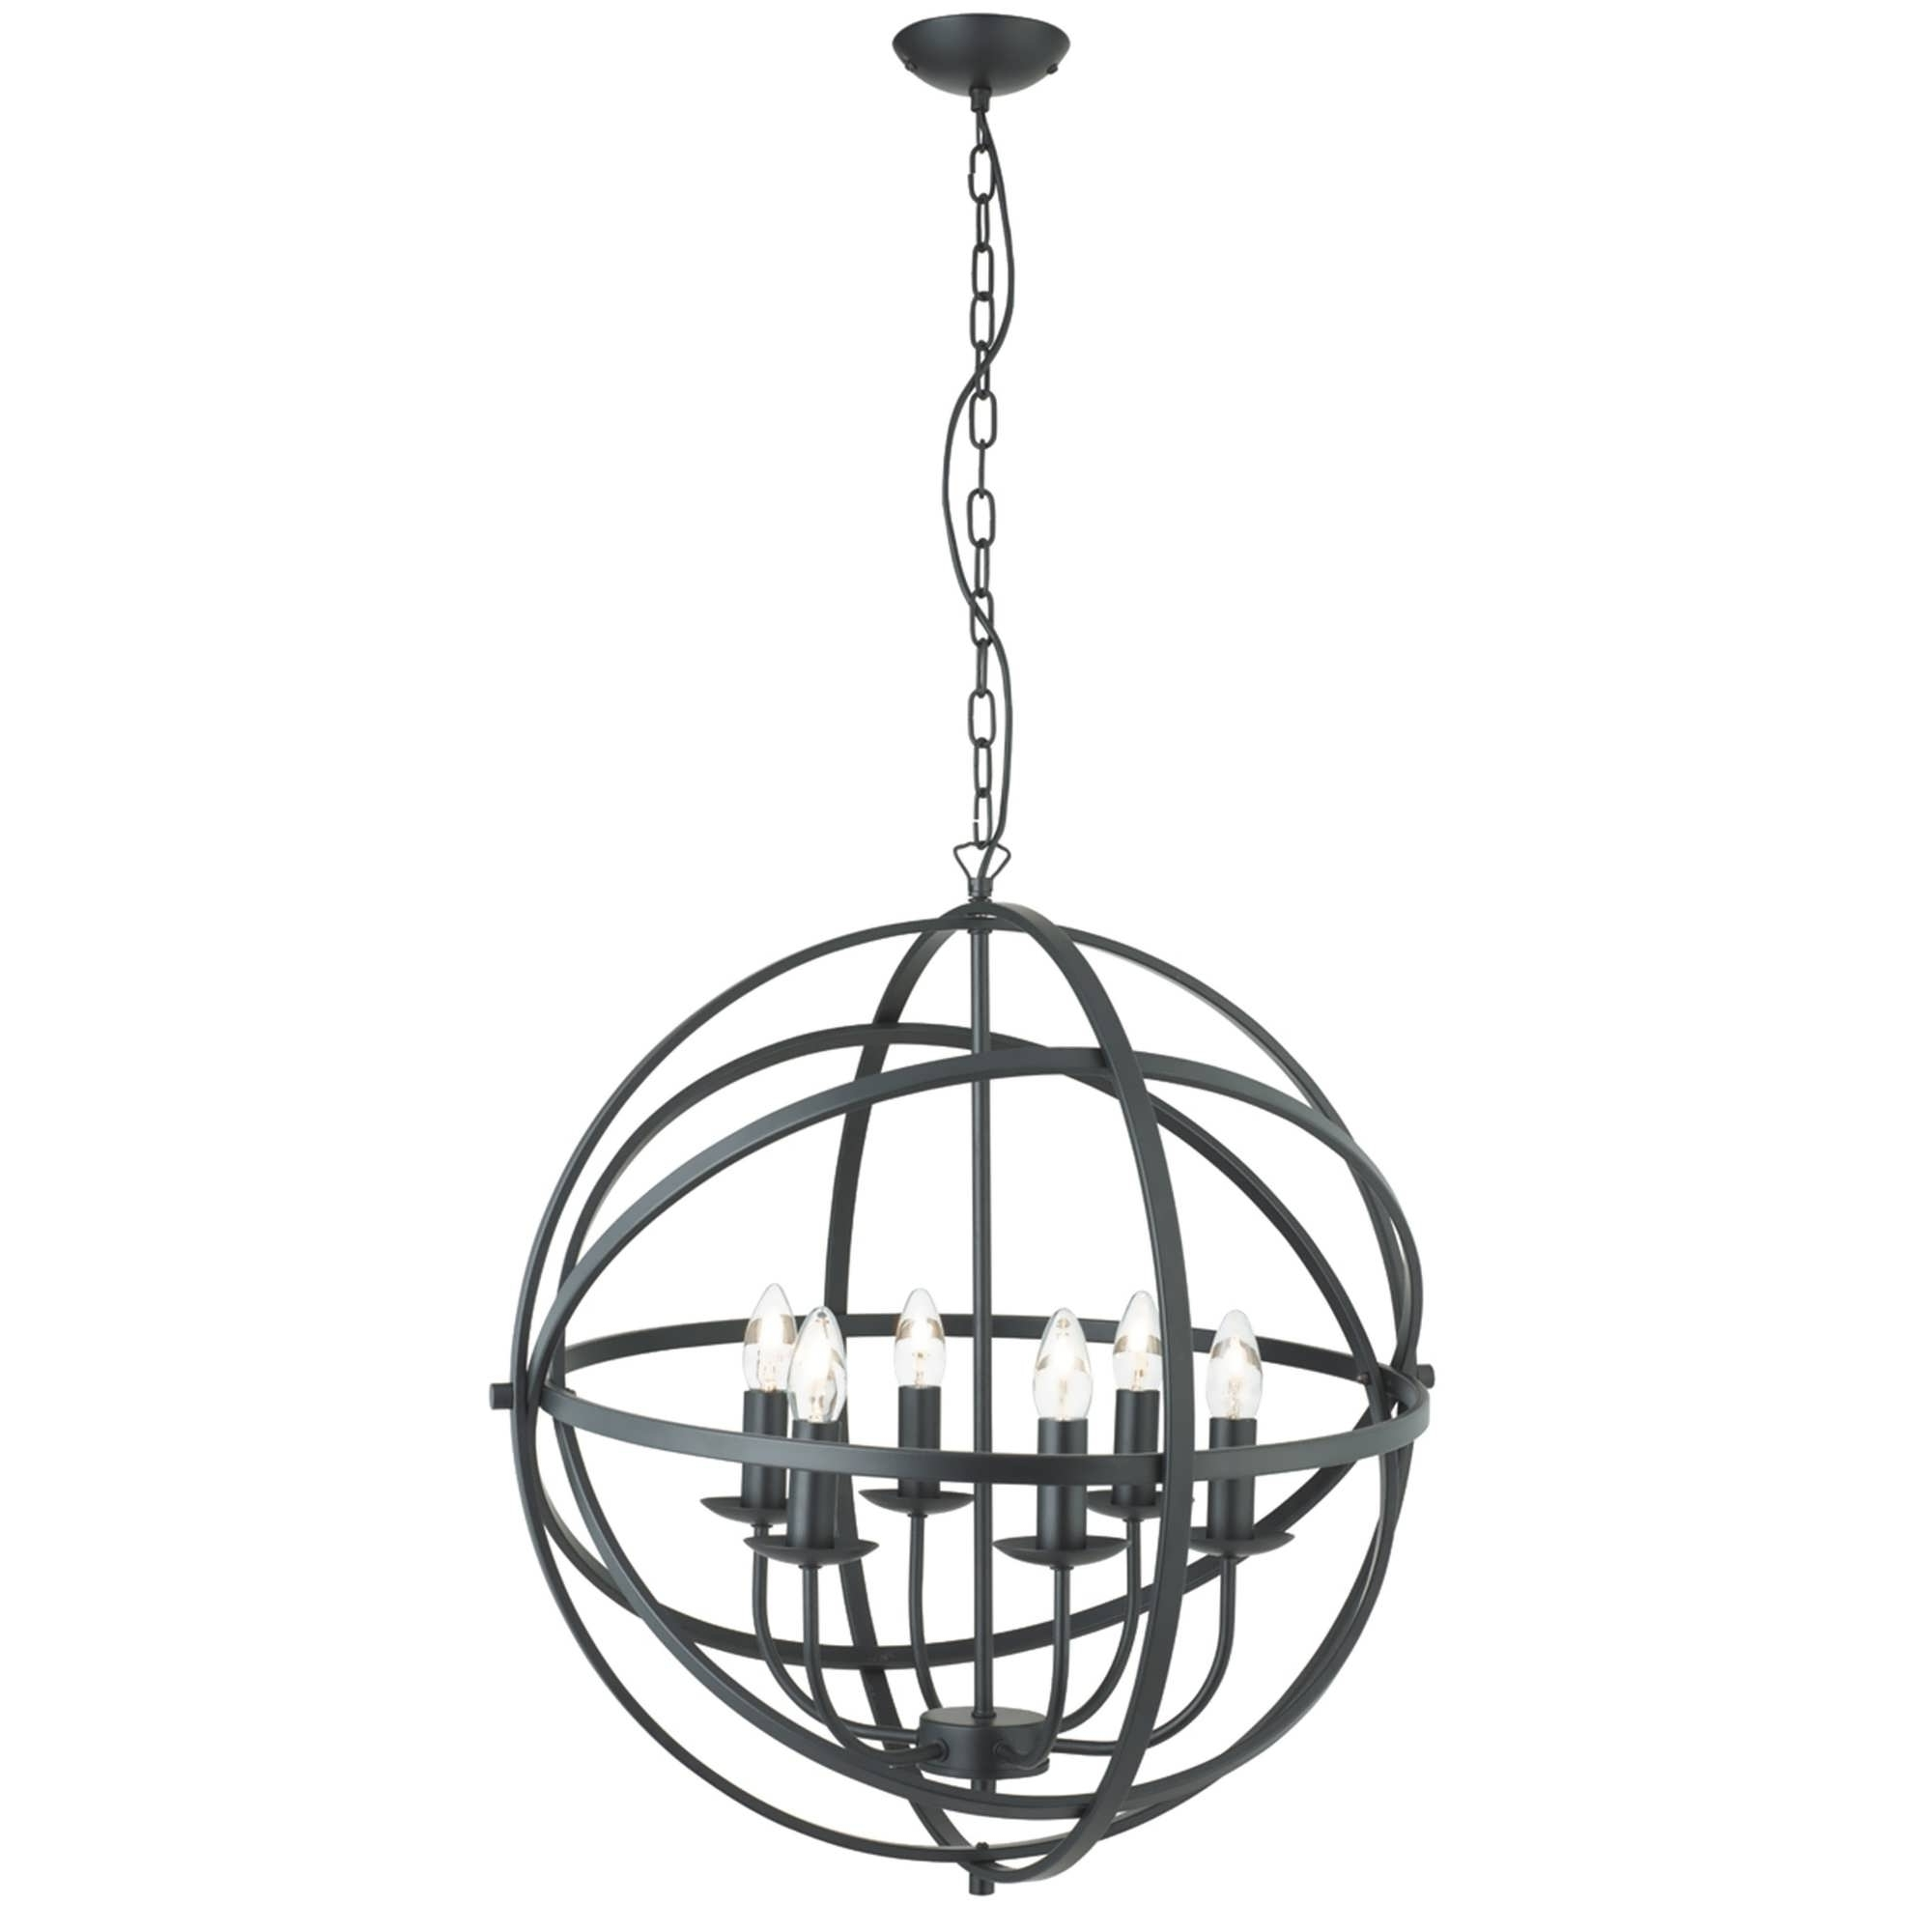 Best And Newest Chandeliers Design : Marvelous Iron Orb Chandelier Rustic Pertaining To Metal Ball Chandeliers (View 2 of 20)